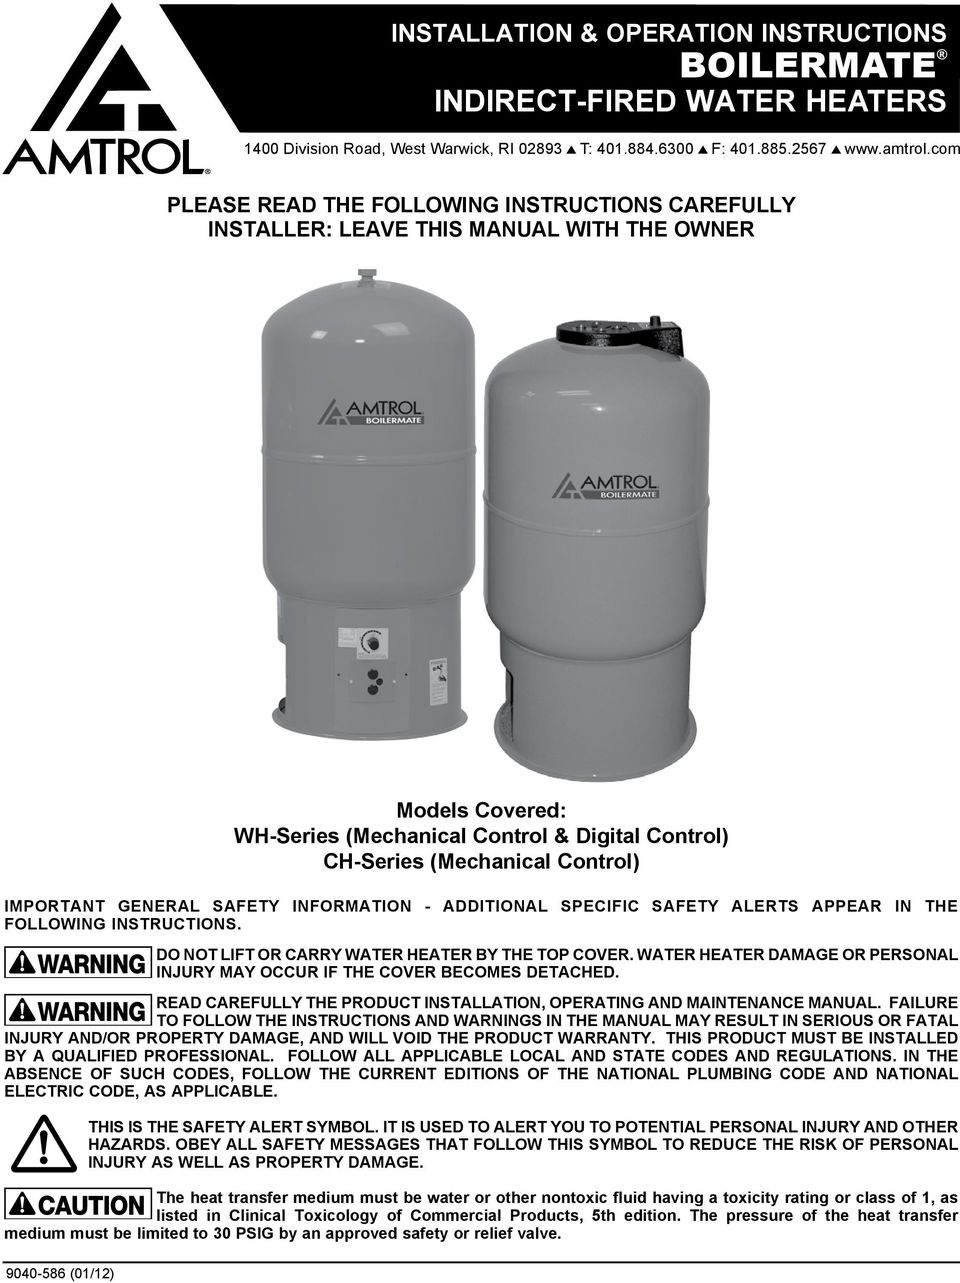 Boilermate indirect fired water heaters pdf important general safety information additional specific safety alerts appear in the following instructions do ccuart Choice Image